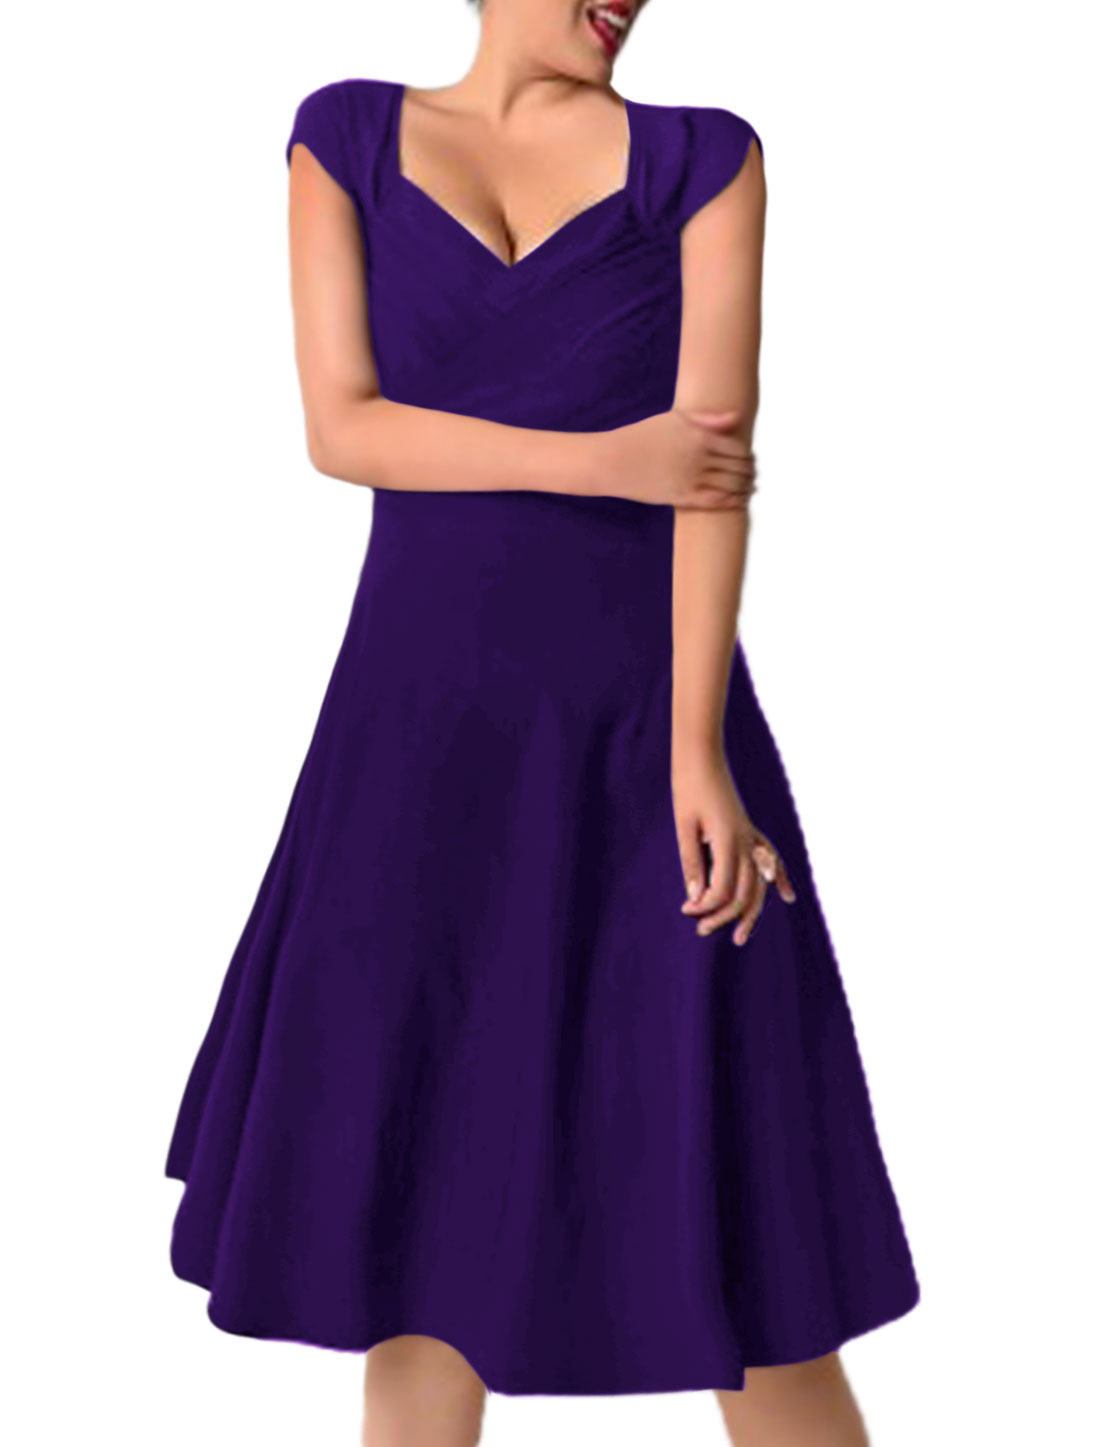 Women Ruched Asymmetric Neck Below Knee Fit and Flare Dress Purple L